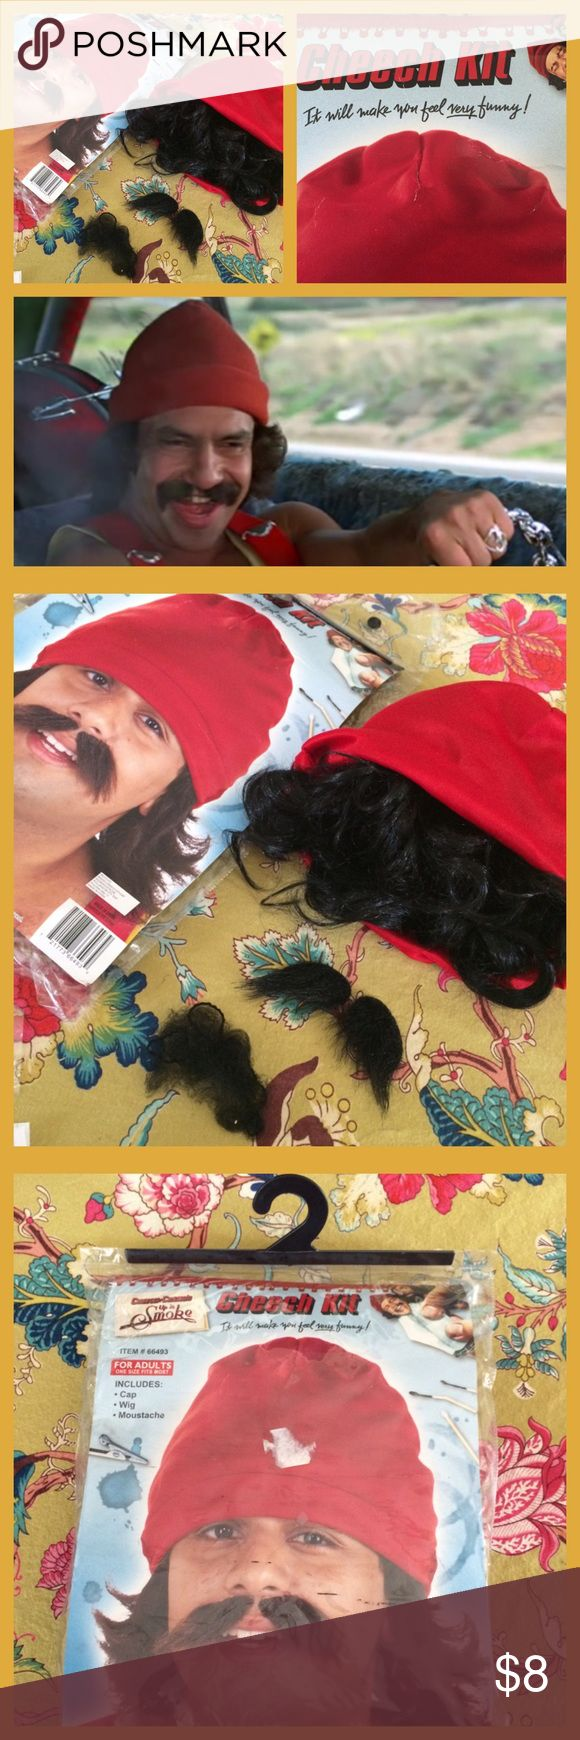 "Cheech Kit Costume Cheech Kit includes a red cap, built in wig, and mustache. Includes hair net. For Adults/One Size Fits Most. Based on Cheech & Chong's ""Up in Smoke"" movie. Thanks for looking! Novelties Inc. Other"